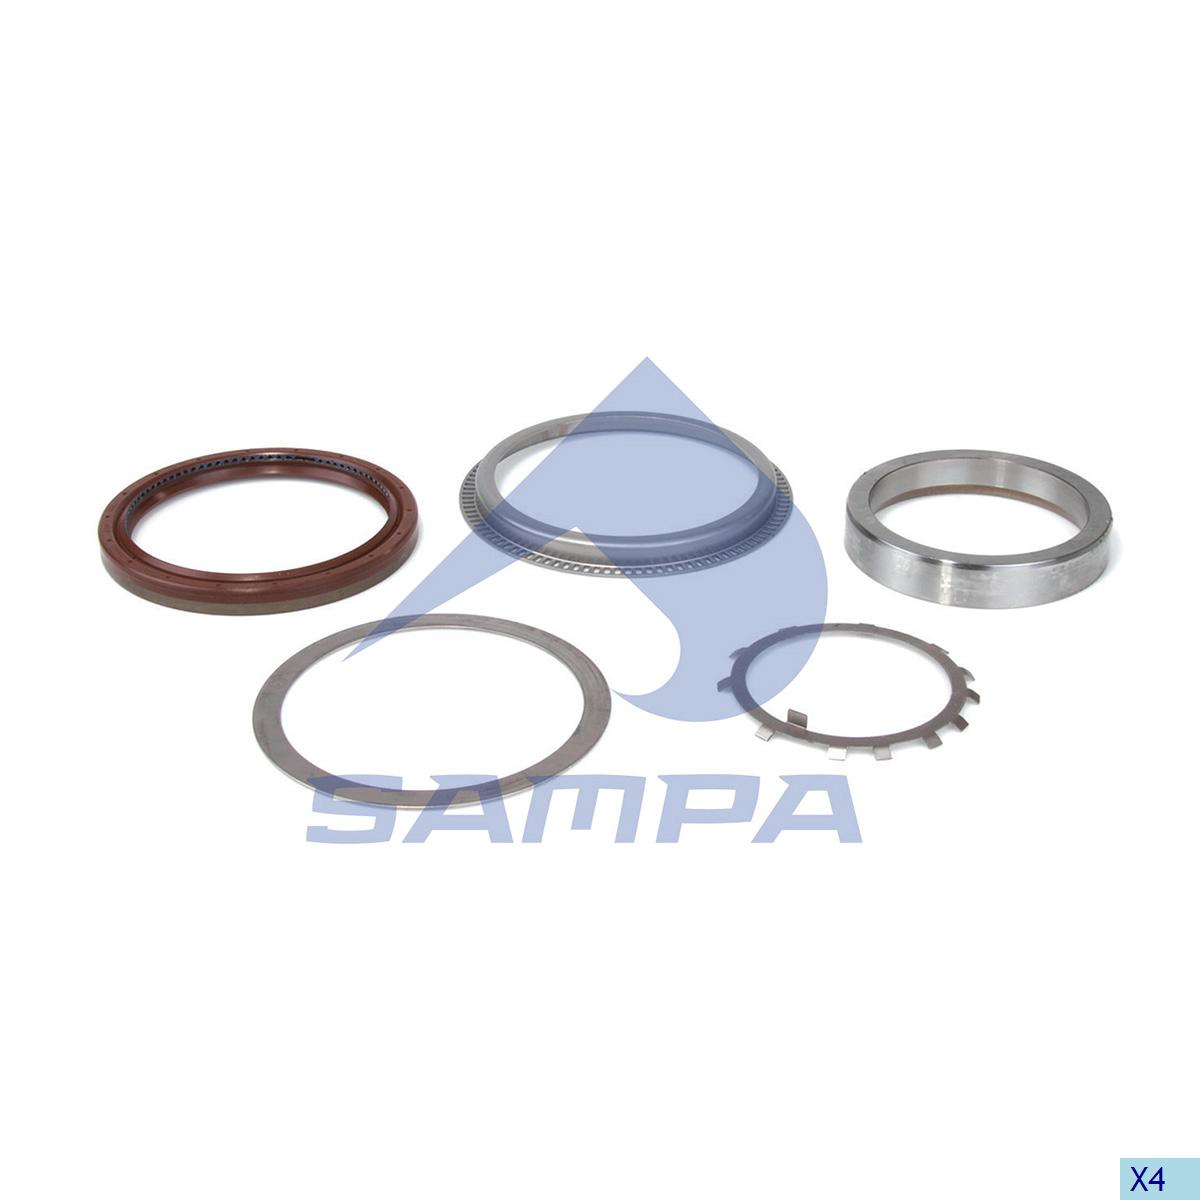 Repair Kit, Wheel Hub, Mercedes, Power Unit